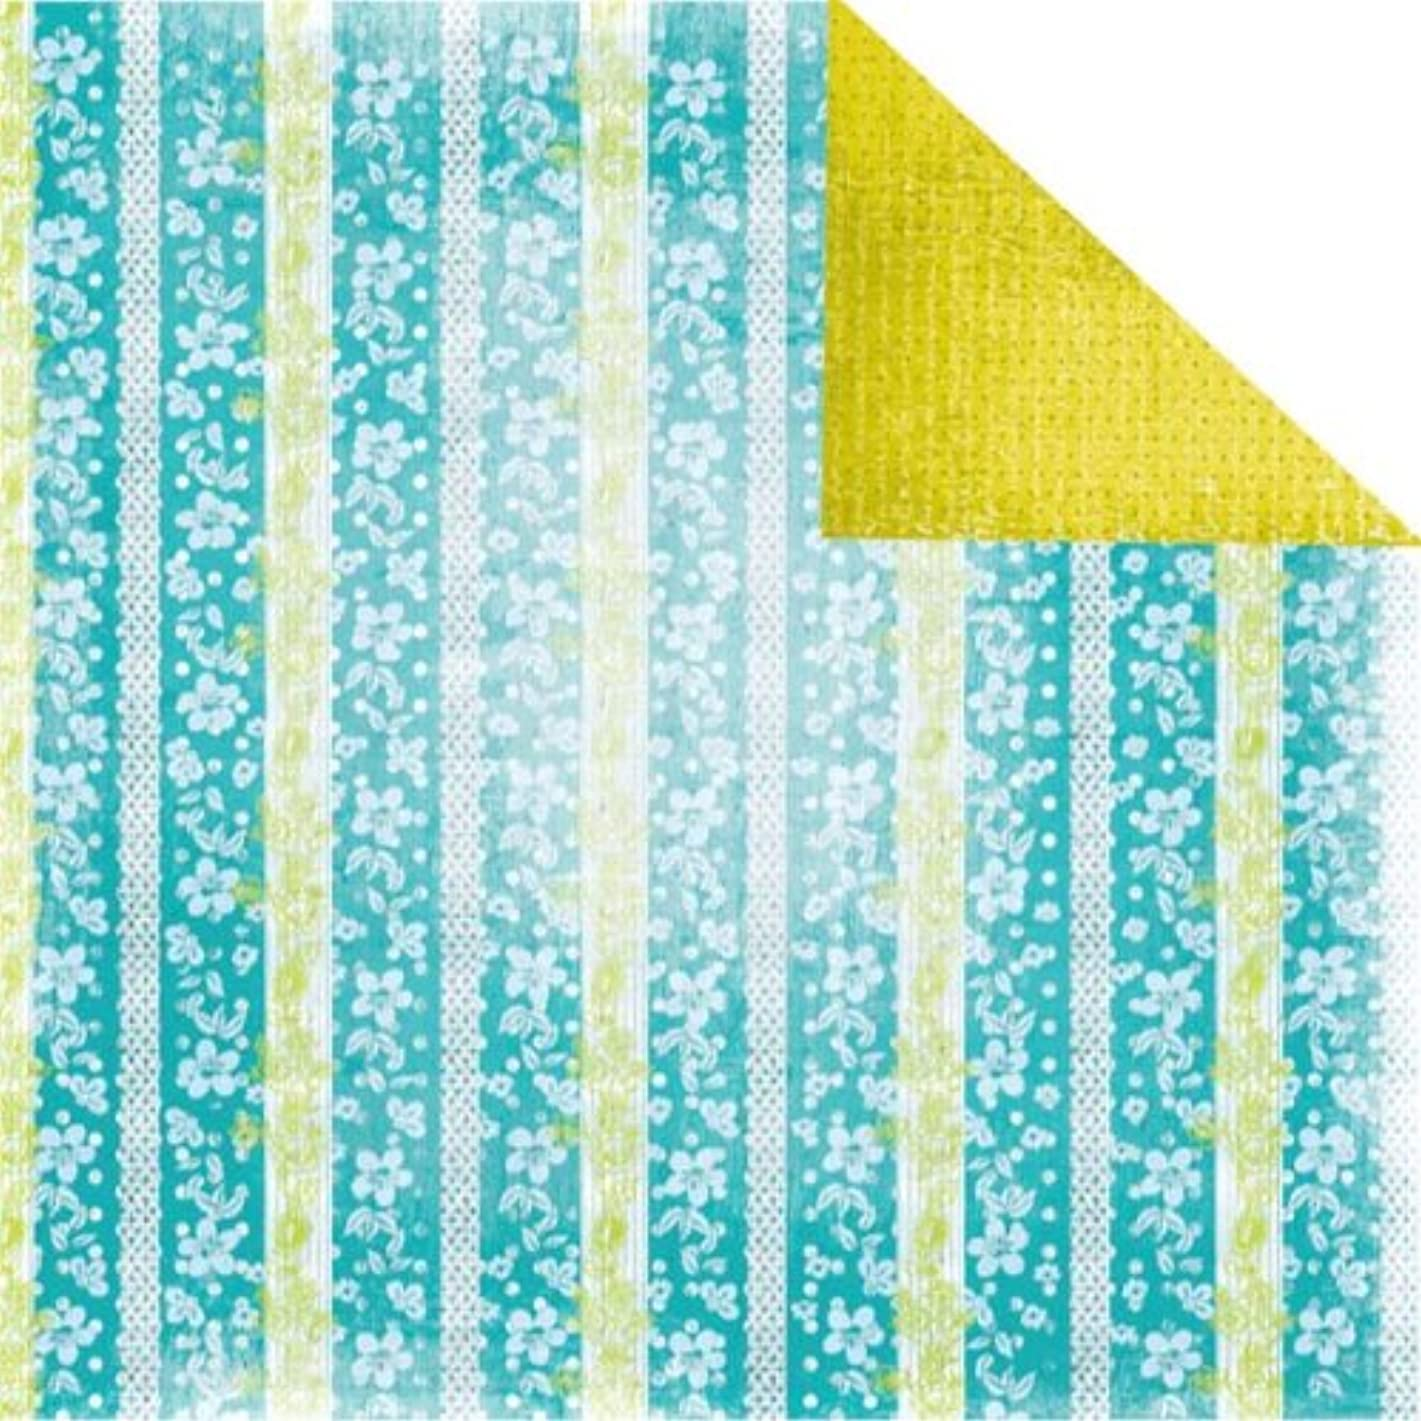 Prima 840938 12 by 12-Inch Tropics Double Sided Patterned Cardstock Paper, Waterfall, 10-Pack